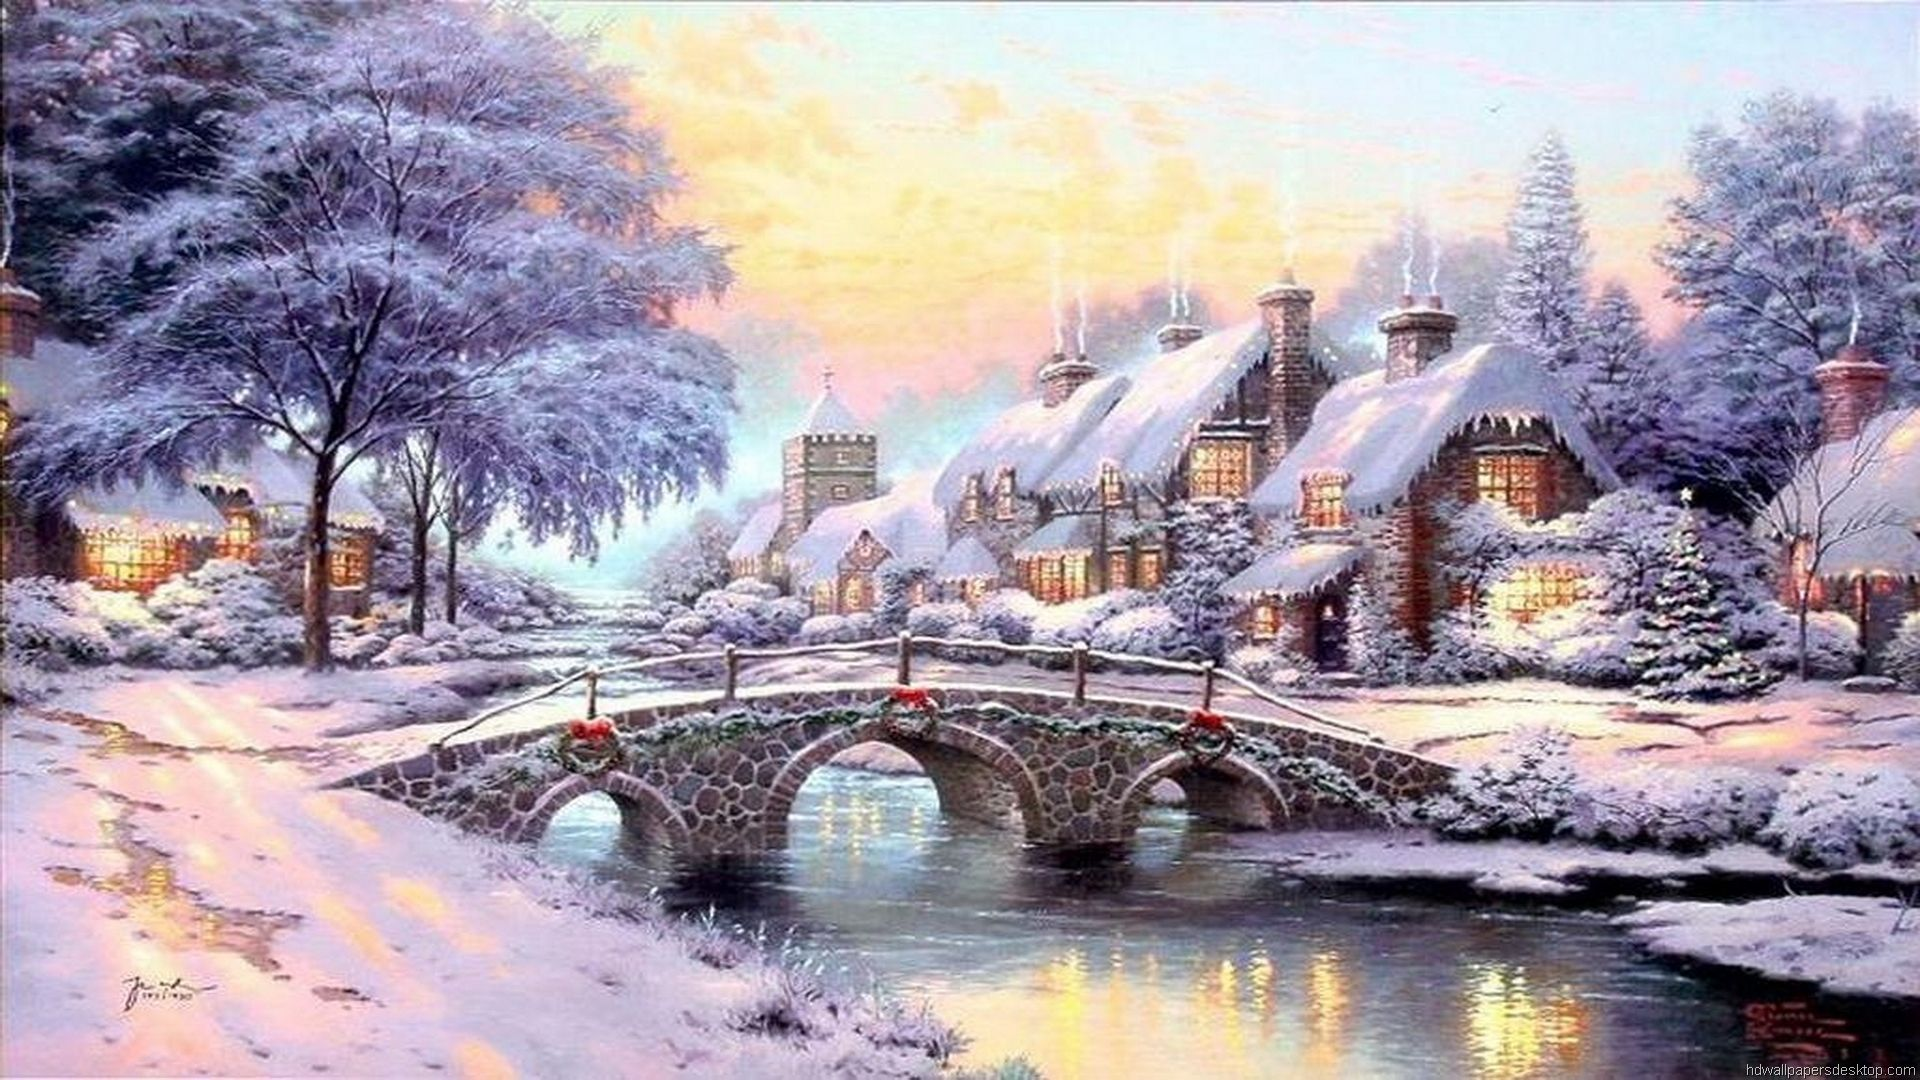 Thomas kinkade christmas village thomas kinkade - Art village wallpaper ...